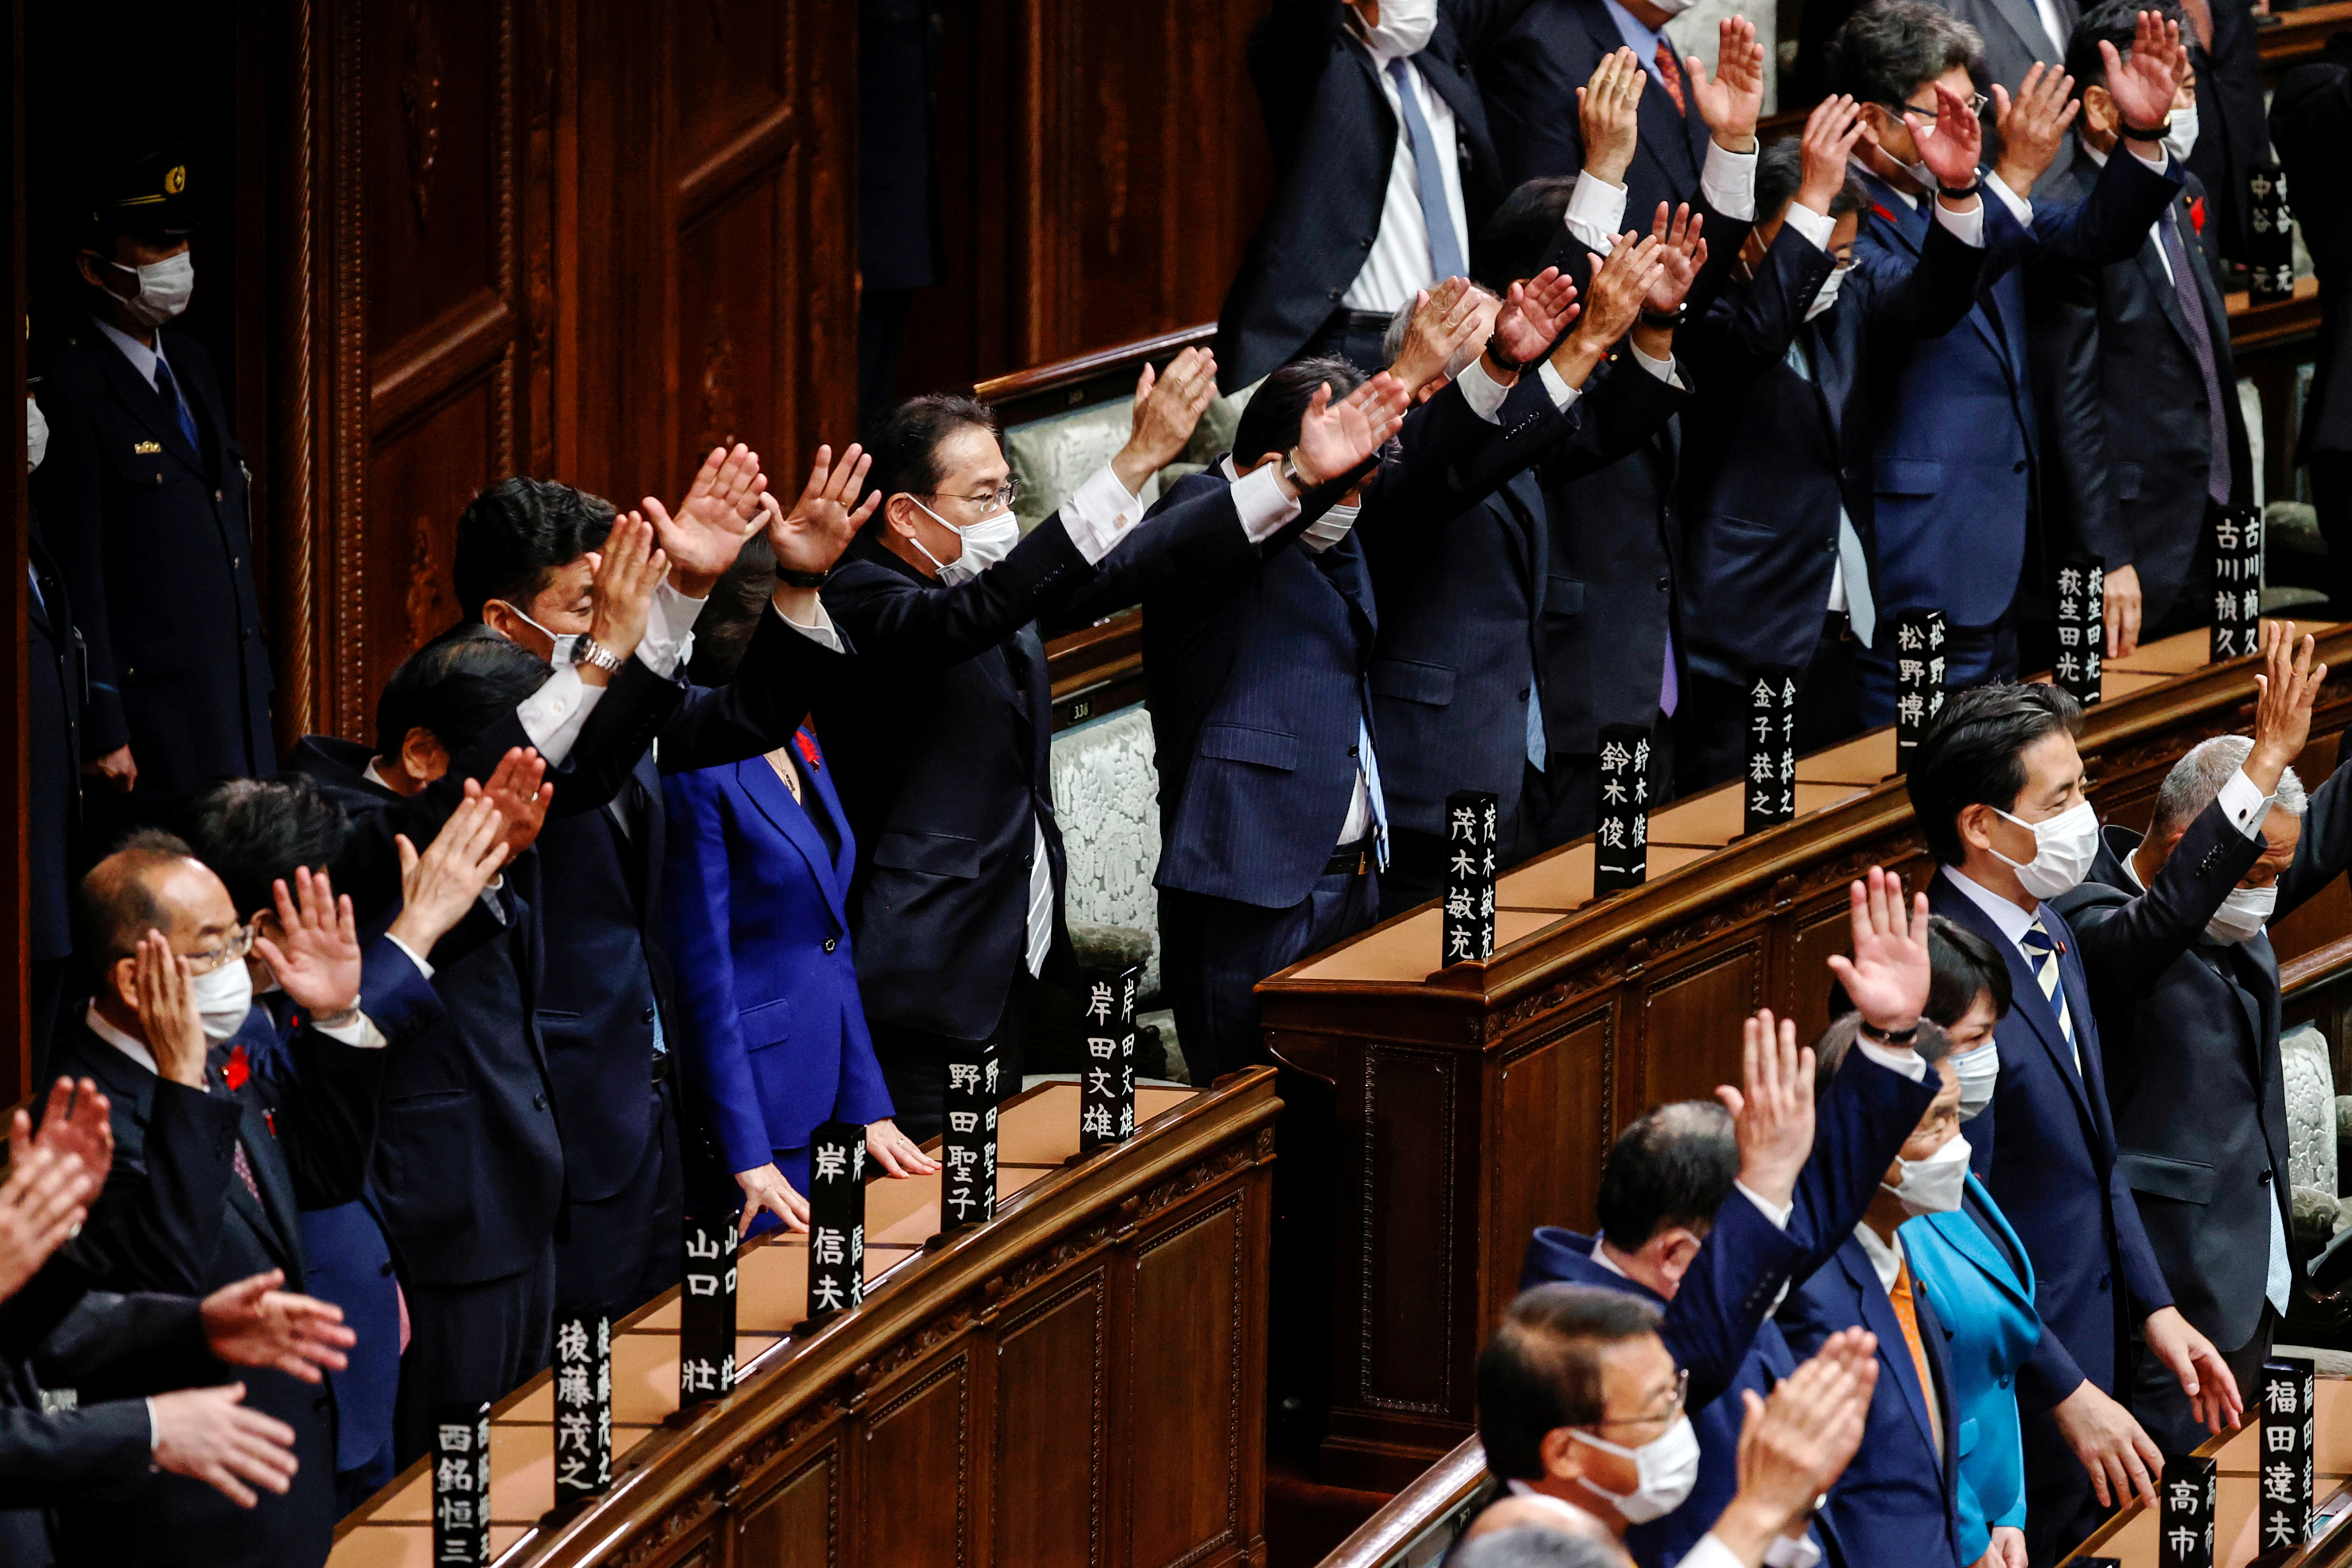 Japan's Prime Minister and the leader of the ruling Liberal Democratic Party (LDP) Fumio Kishida and his cabinet ministers raise their hands and shout